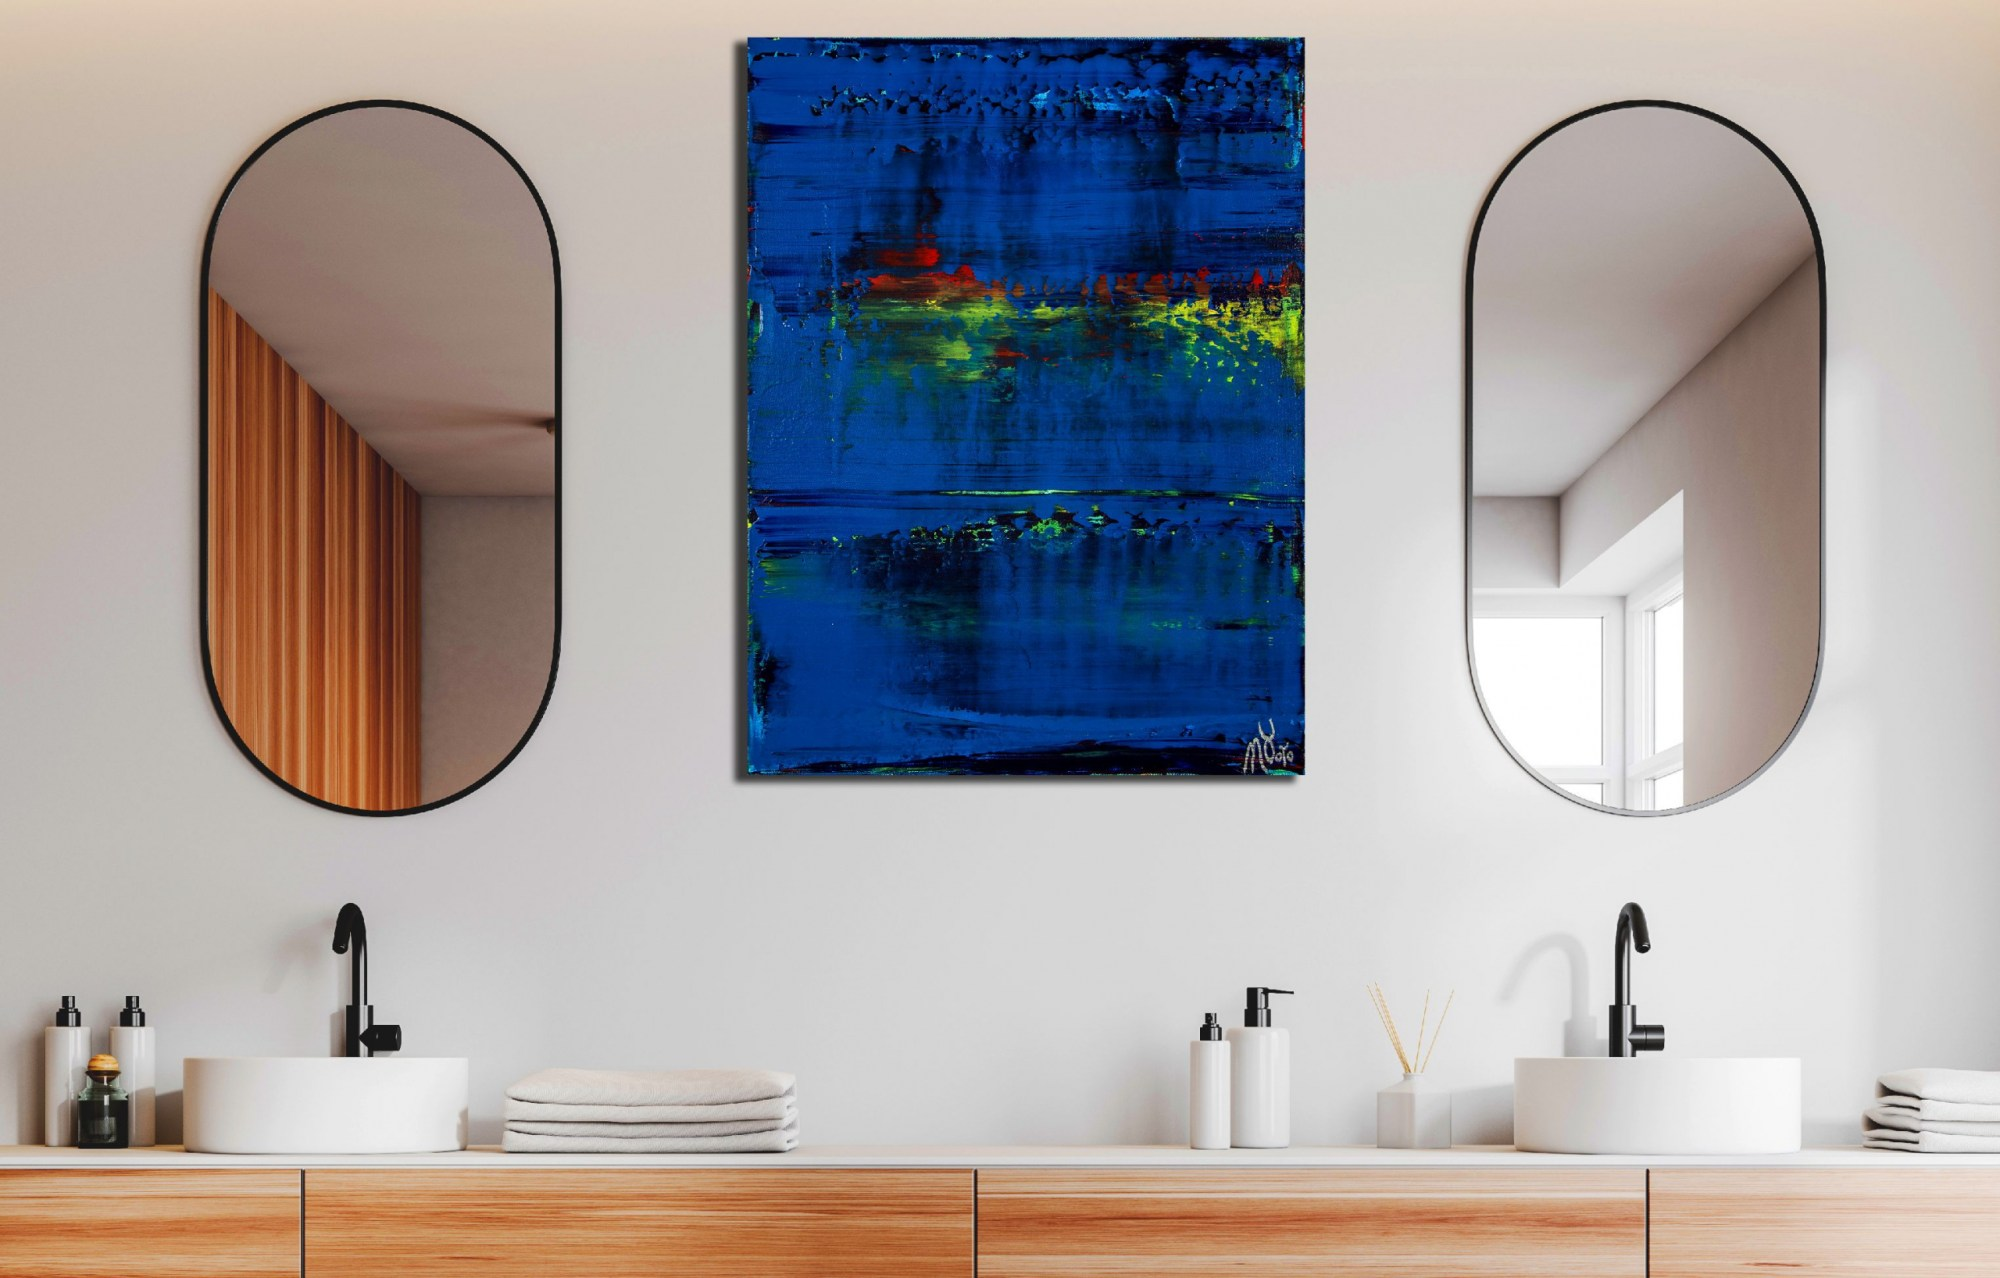 Room view example / St. Barts (Caribbean ocean coast) 2 (2020) by Nestor Toro